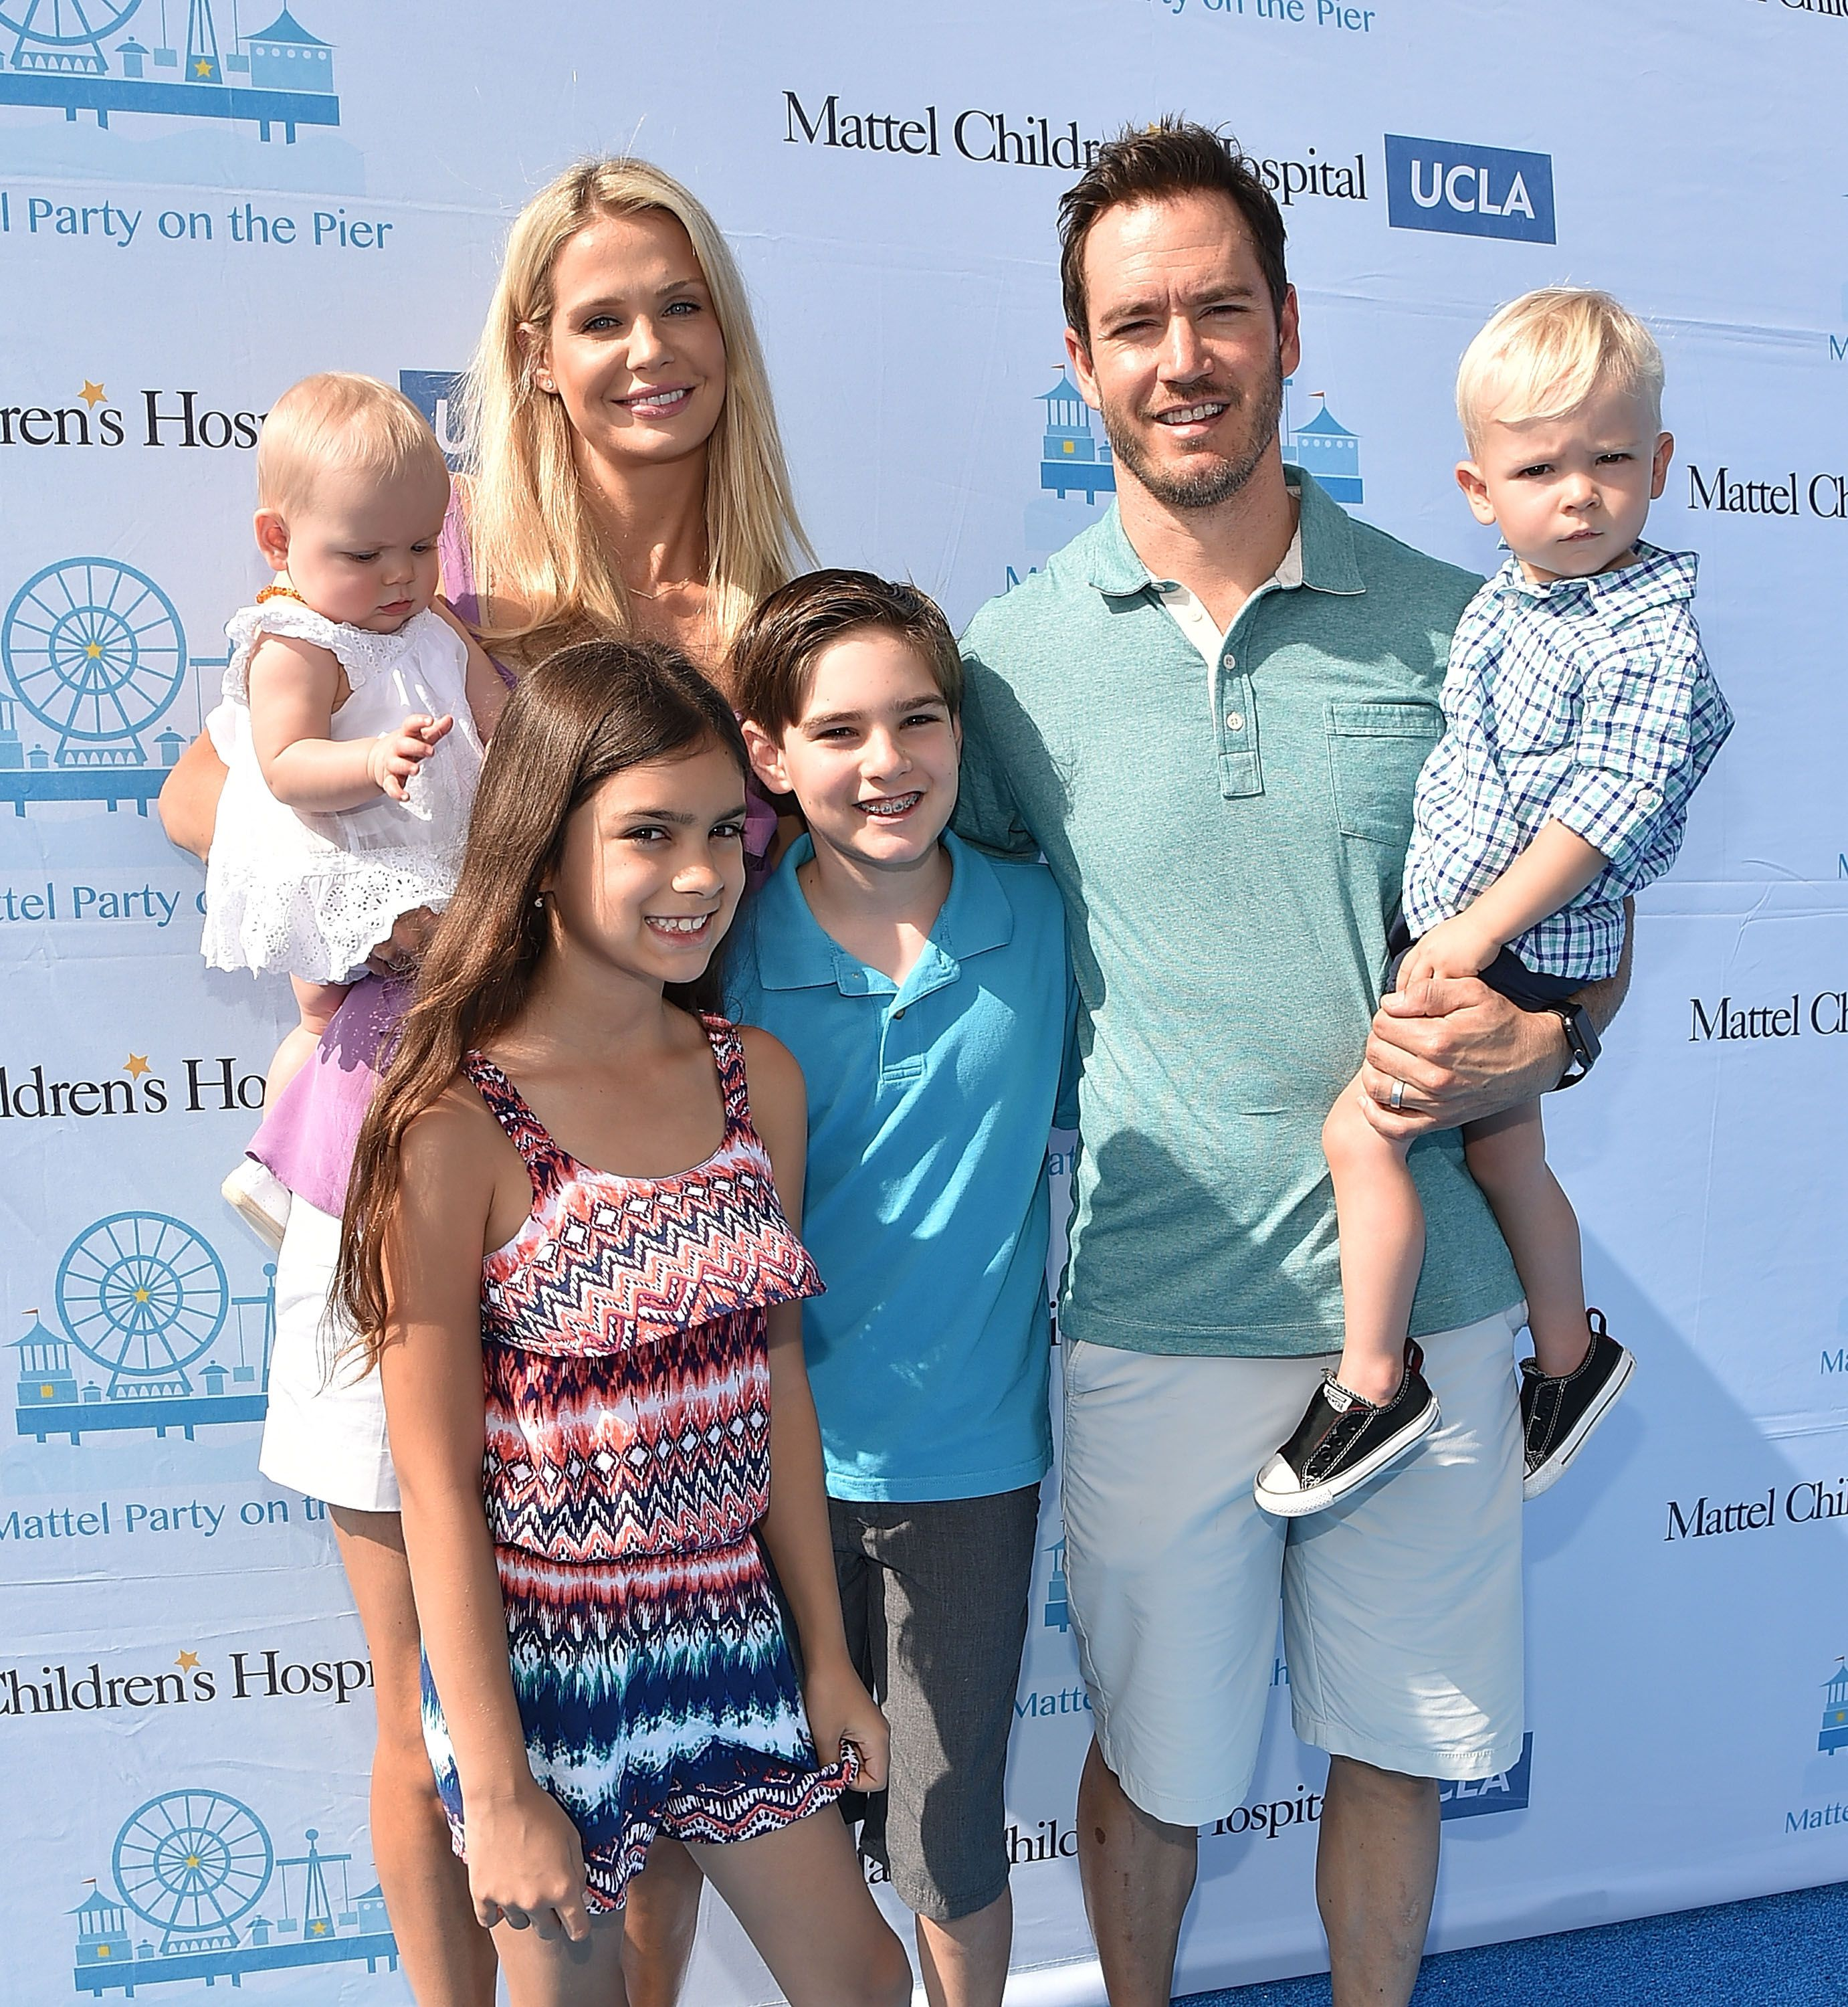 Mark-Paul Gosselaar and his wife Catriona McGinn and their children Michael, Ava, Dekker, and Lachlyn at Santa Monica Pier in 2015 in Santa Monica, California | Source: Getty Images